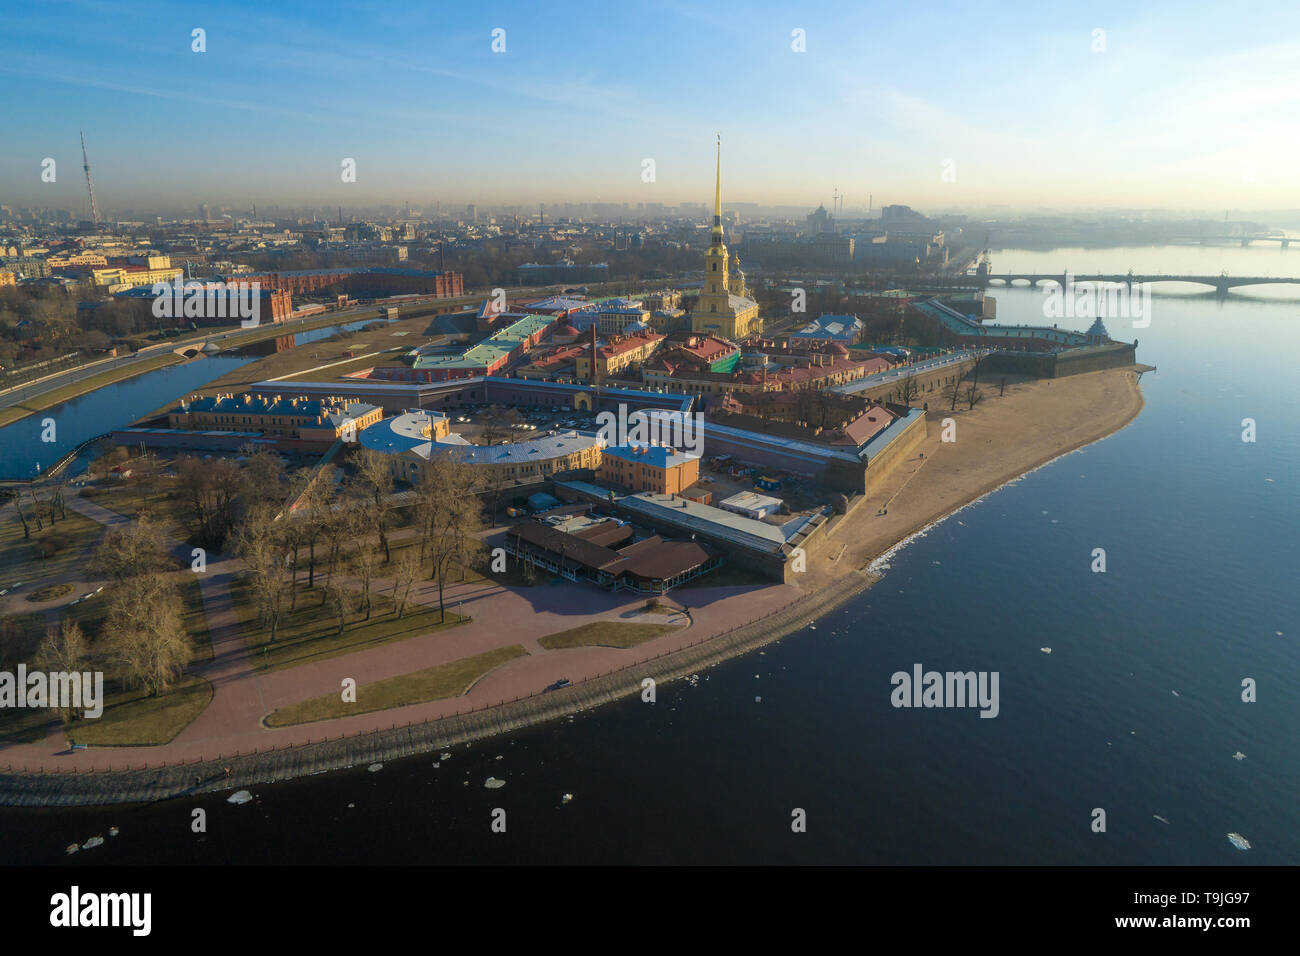 View of the Peter and Paul Fortress on early April morning (aerial photography). Saint-Petersburg, Russia - Stock Image